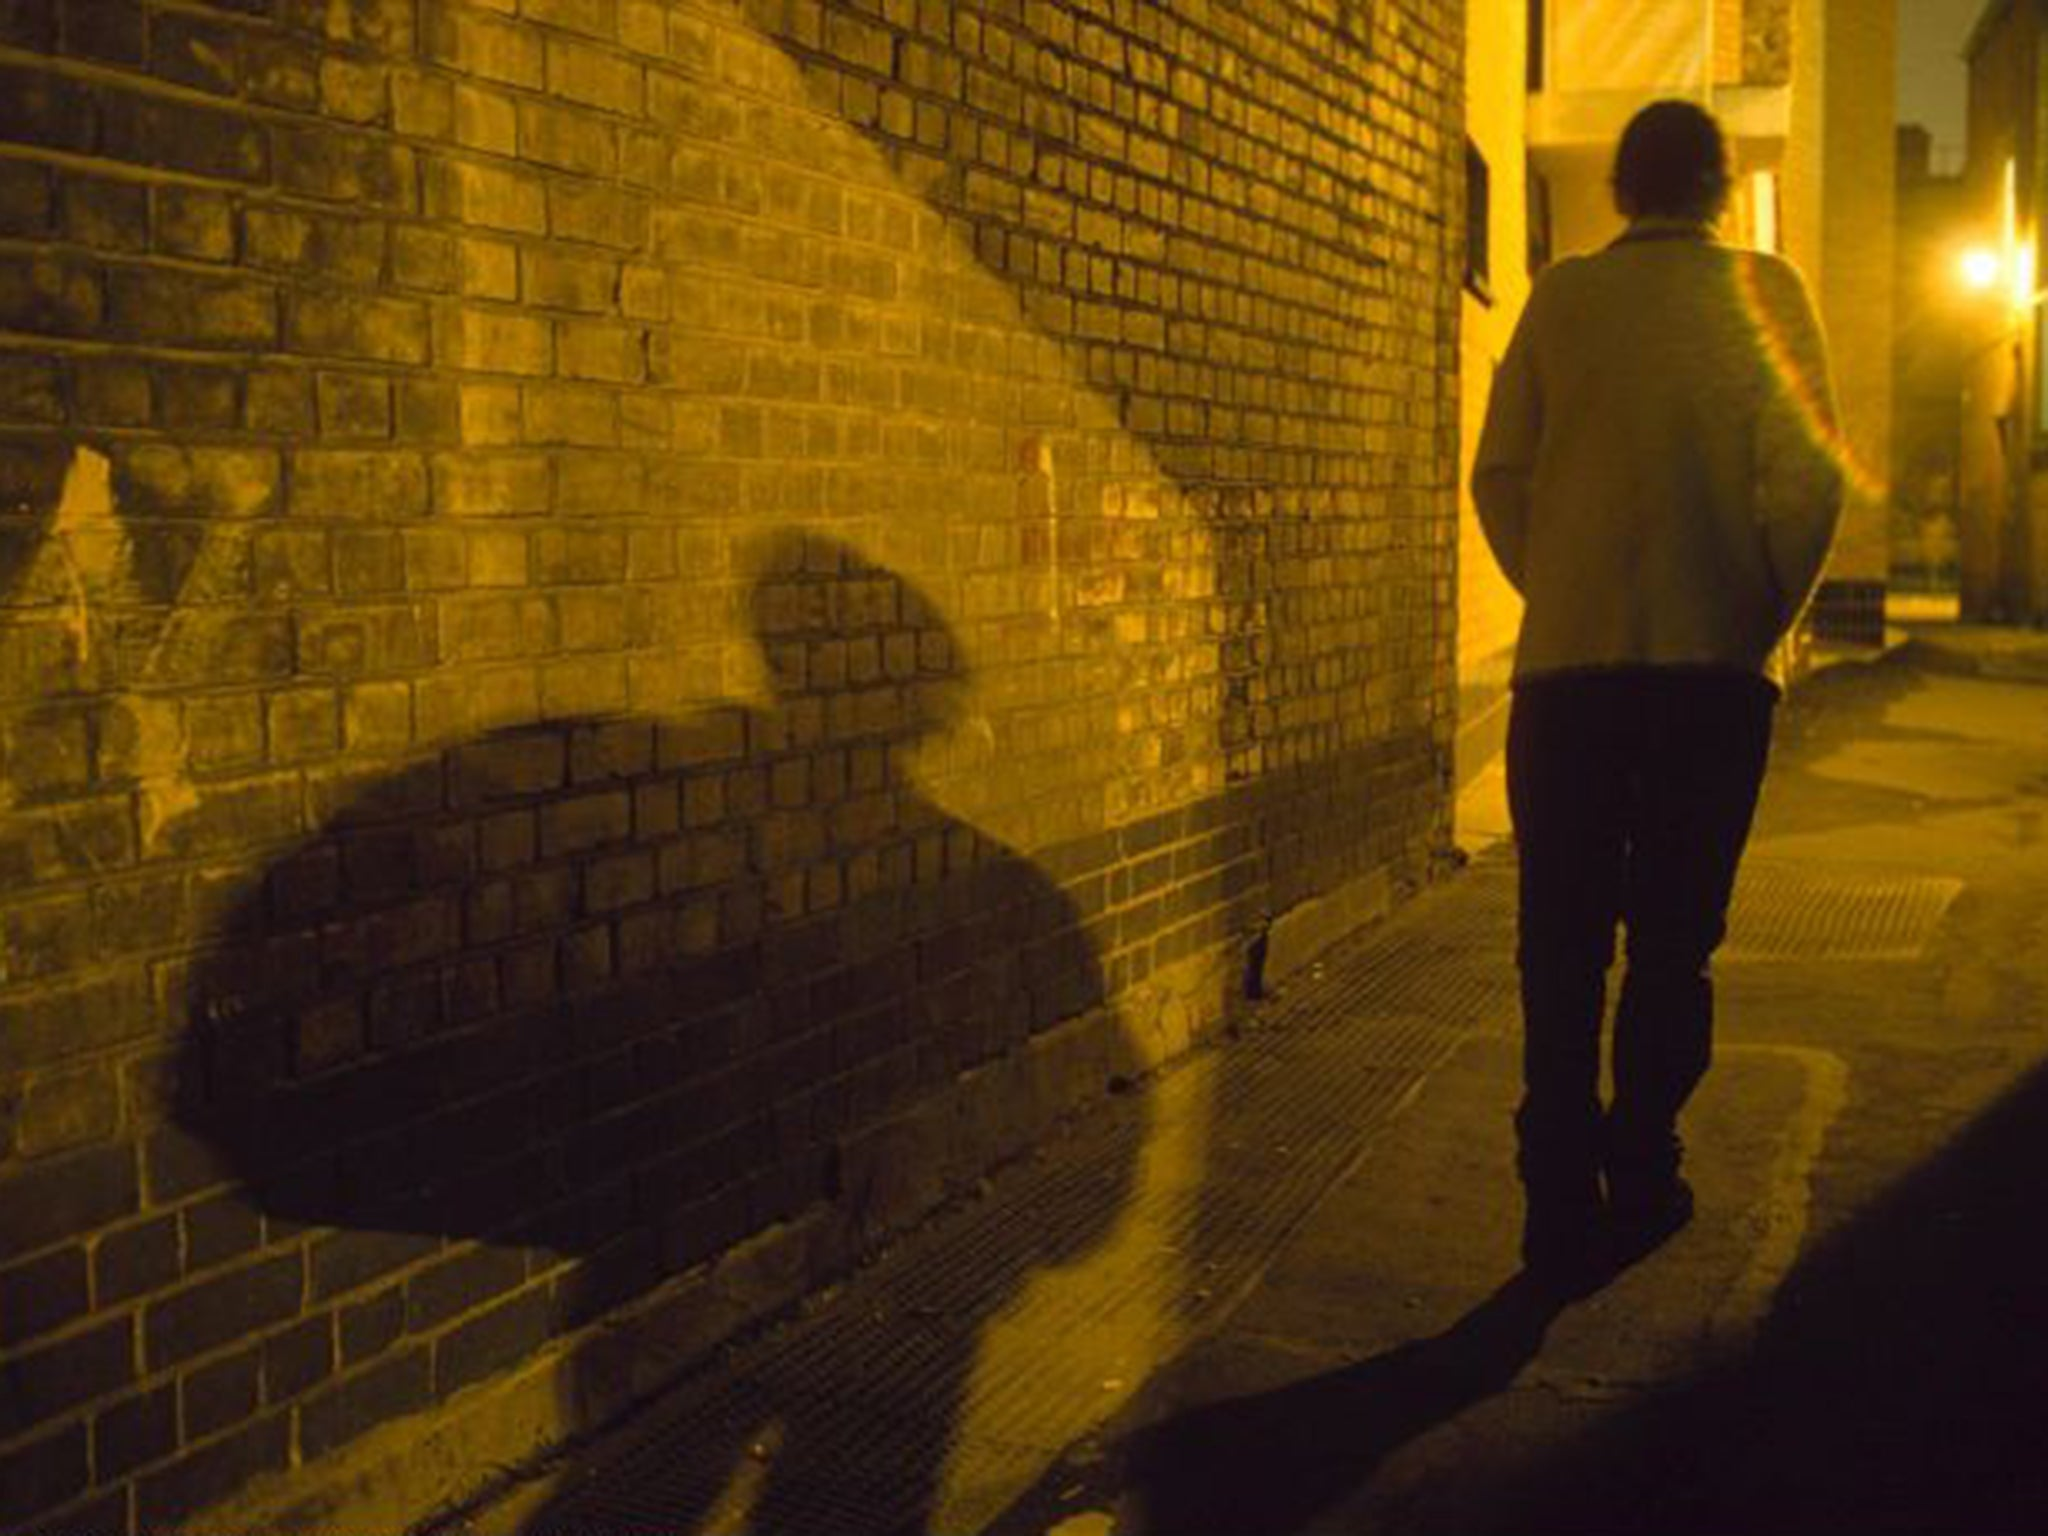 Victims of stalking being 'let down' by police, report ... Stalker People